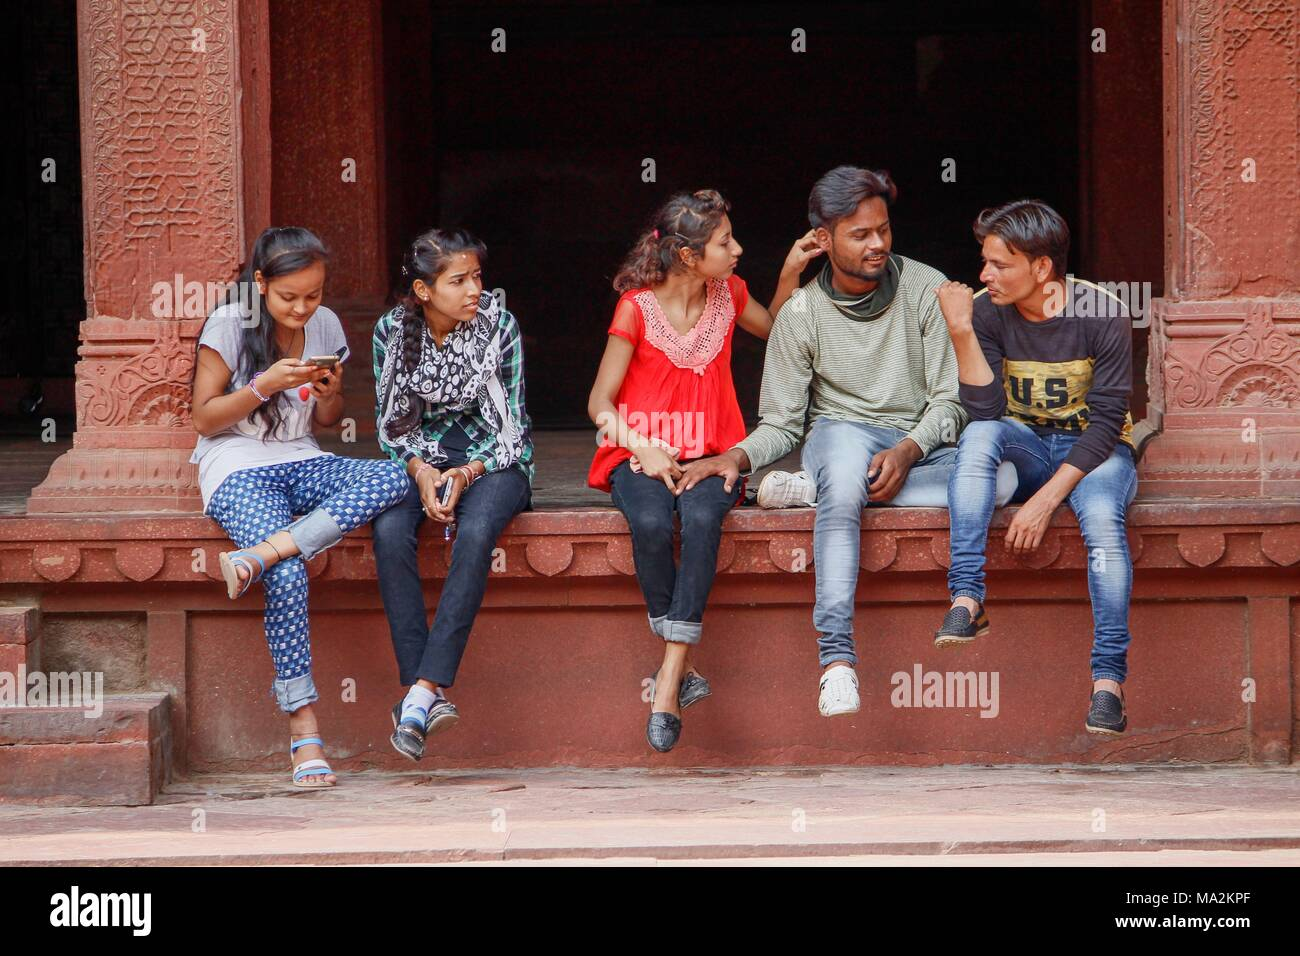 A group of young Indian people having nice time - Stock Image